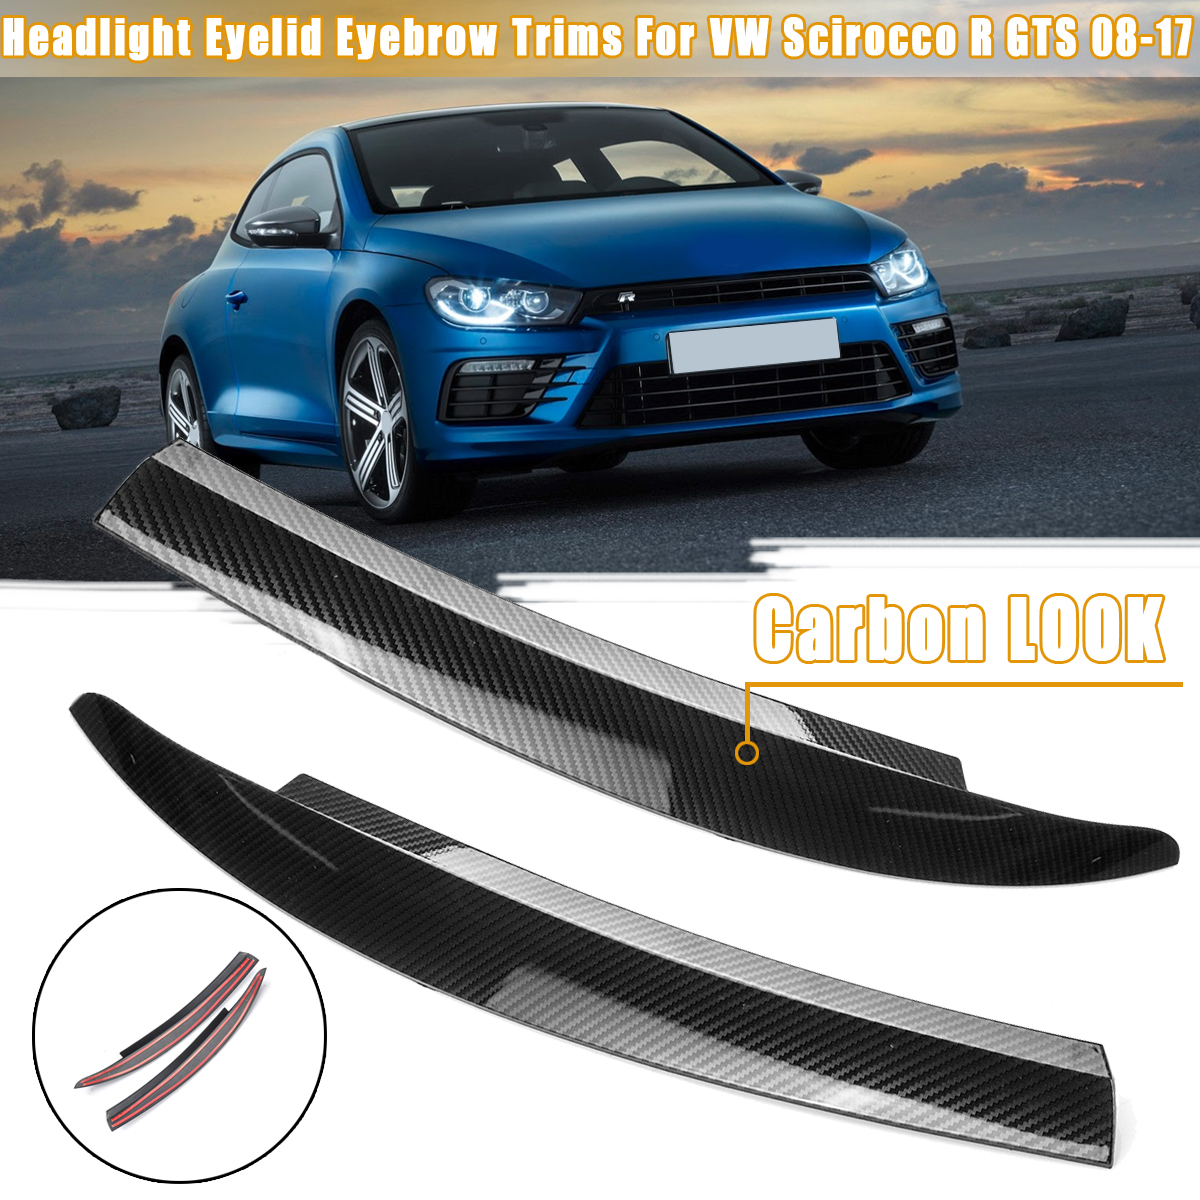 2PCS Black/Carbon Fiber Front Headlight Eyelid Eyebrow Trims For VW Scirocco R GTS 2008 2009 2010 2011 2012 2013 2014 2015-2017